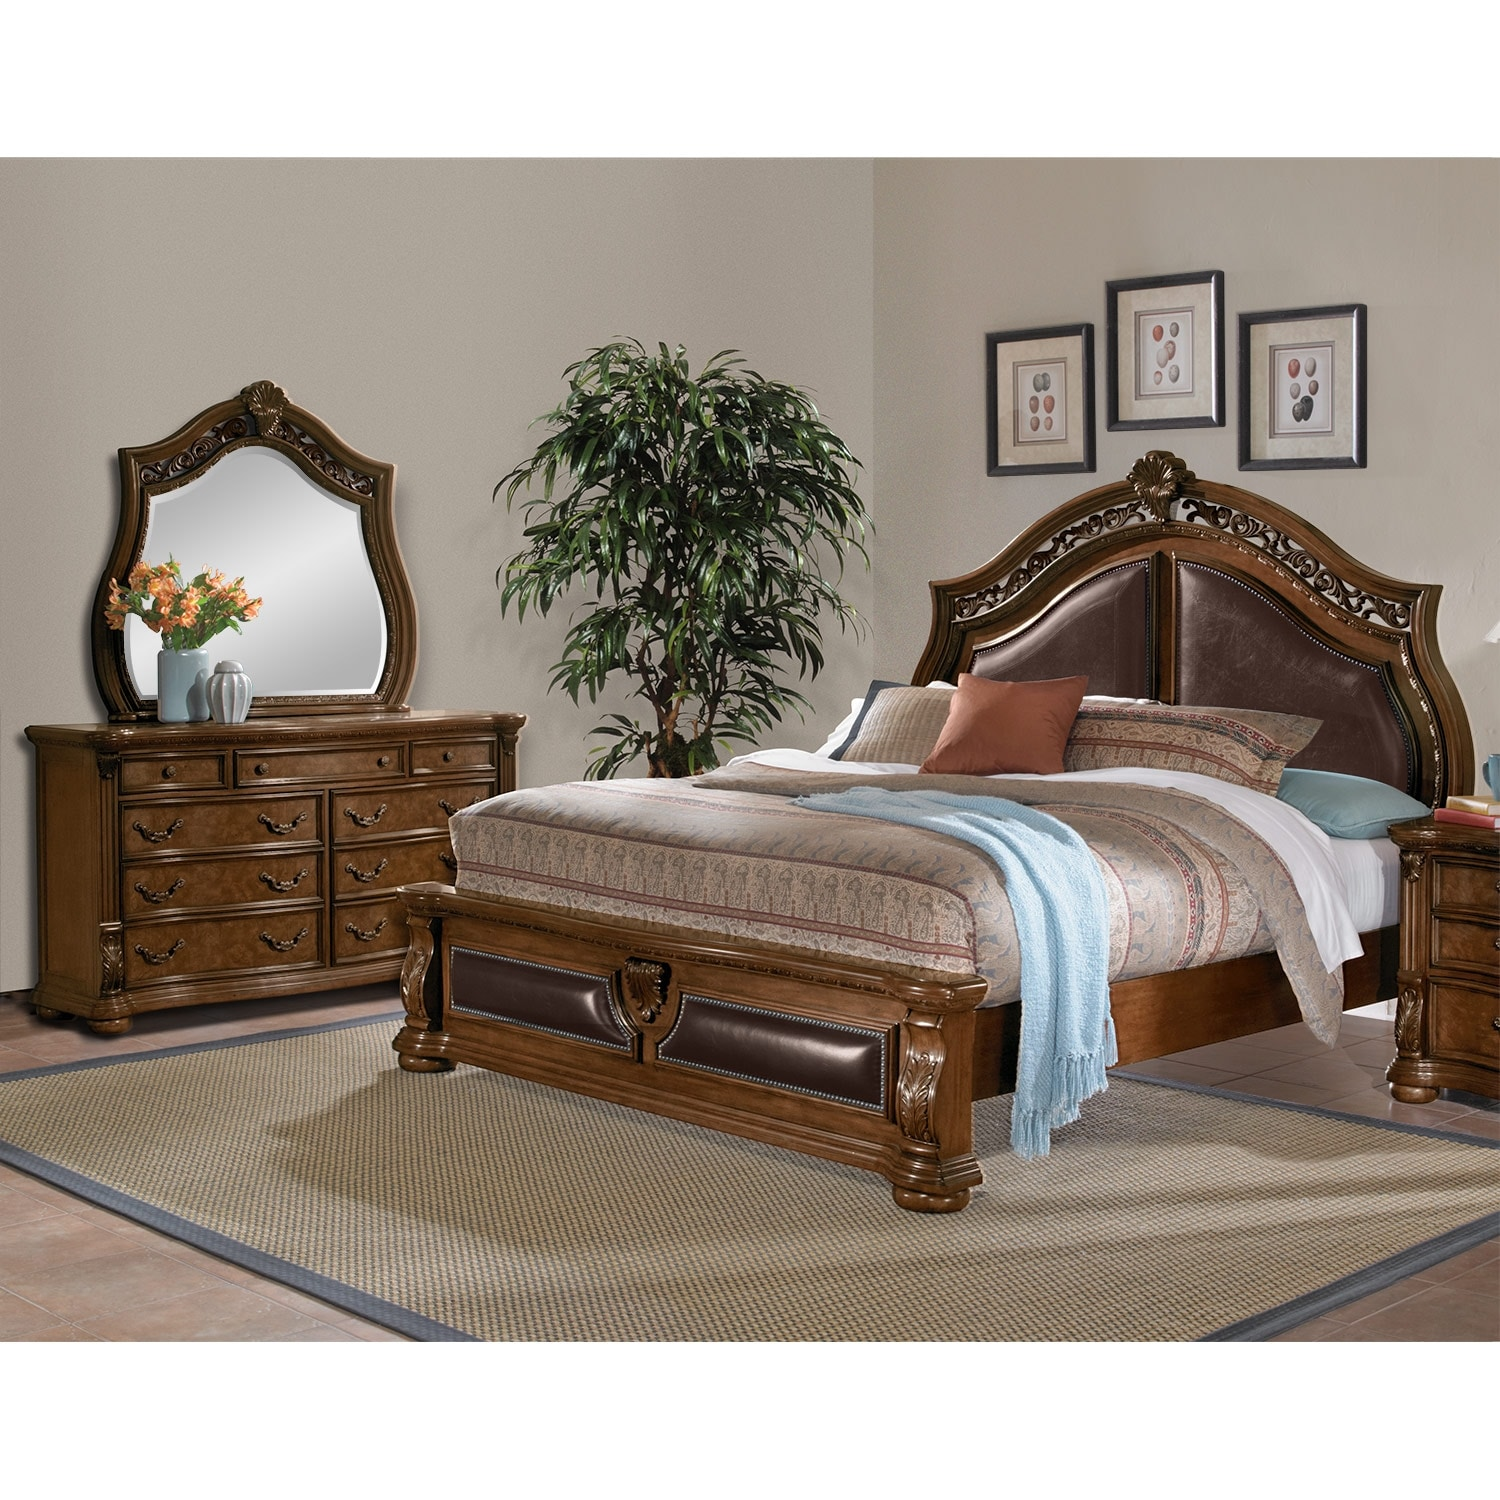 Attrayant Bedroom Furniture   Morocco 5 Piece Queen Upholstered Bedroom Set   Pecan